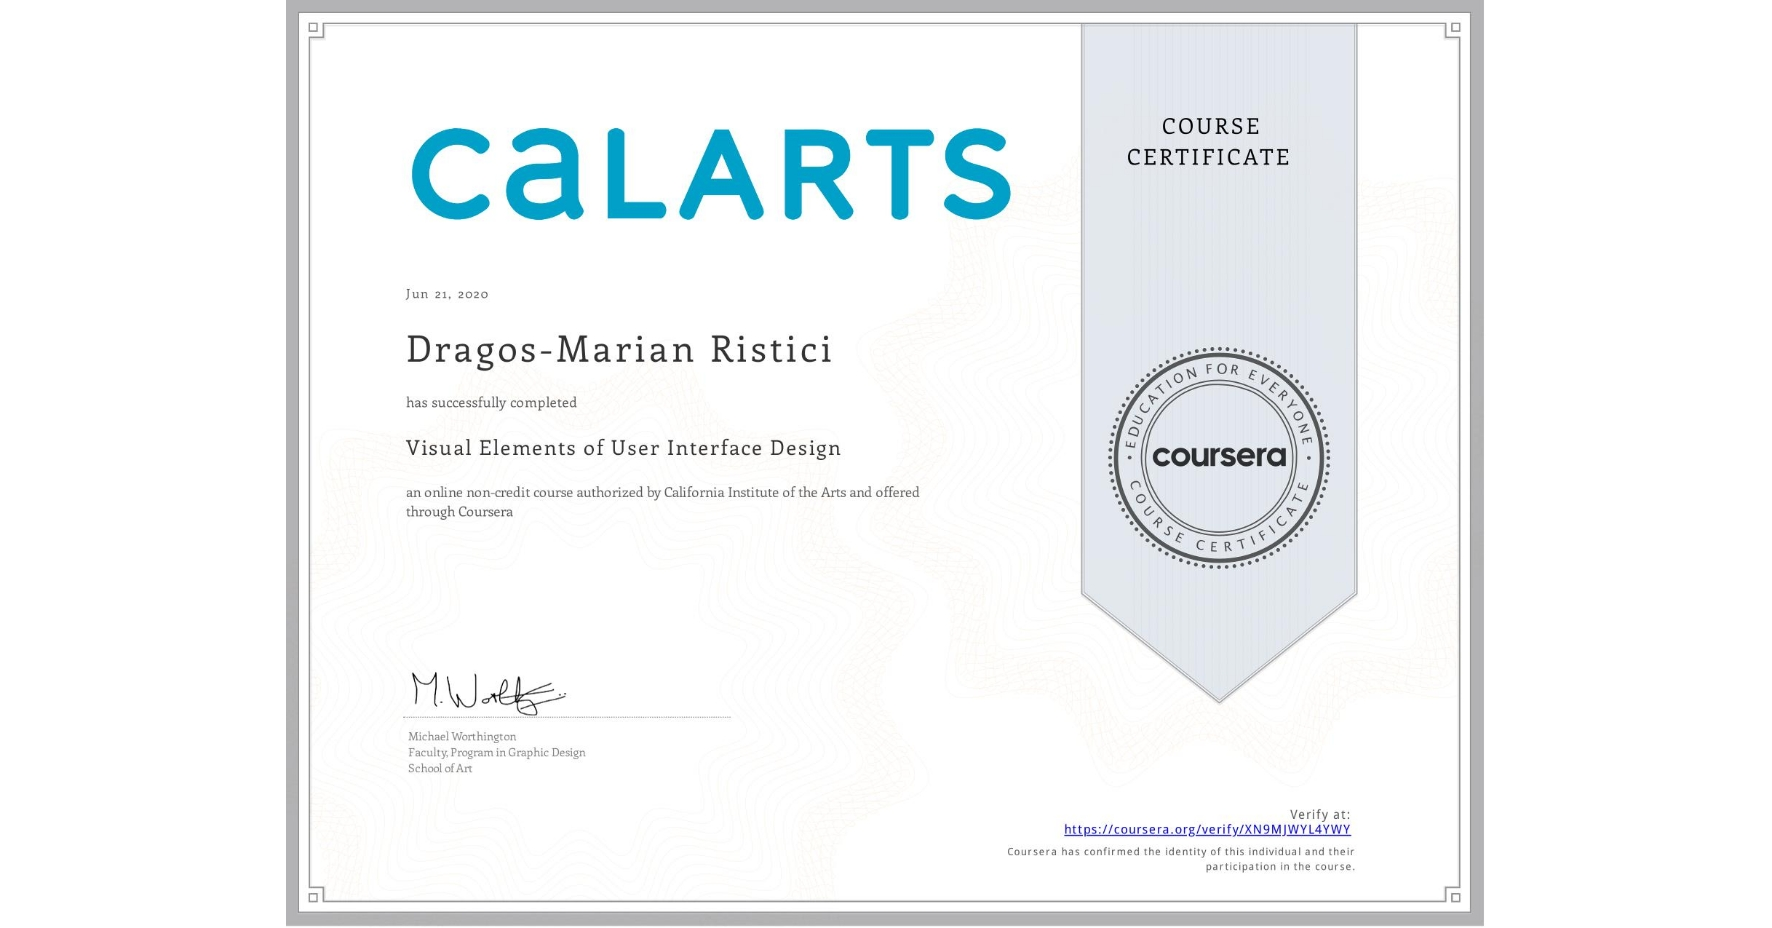 View certificate for Dragos-Marian Ristici, Visual Elements of User Interface Design, an online non-credit course authorized by California Institute of the Arts and offered through Coursera